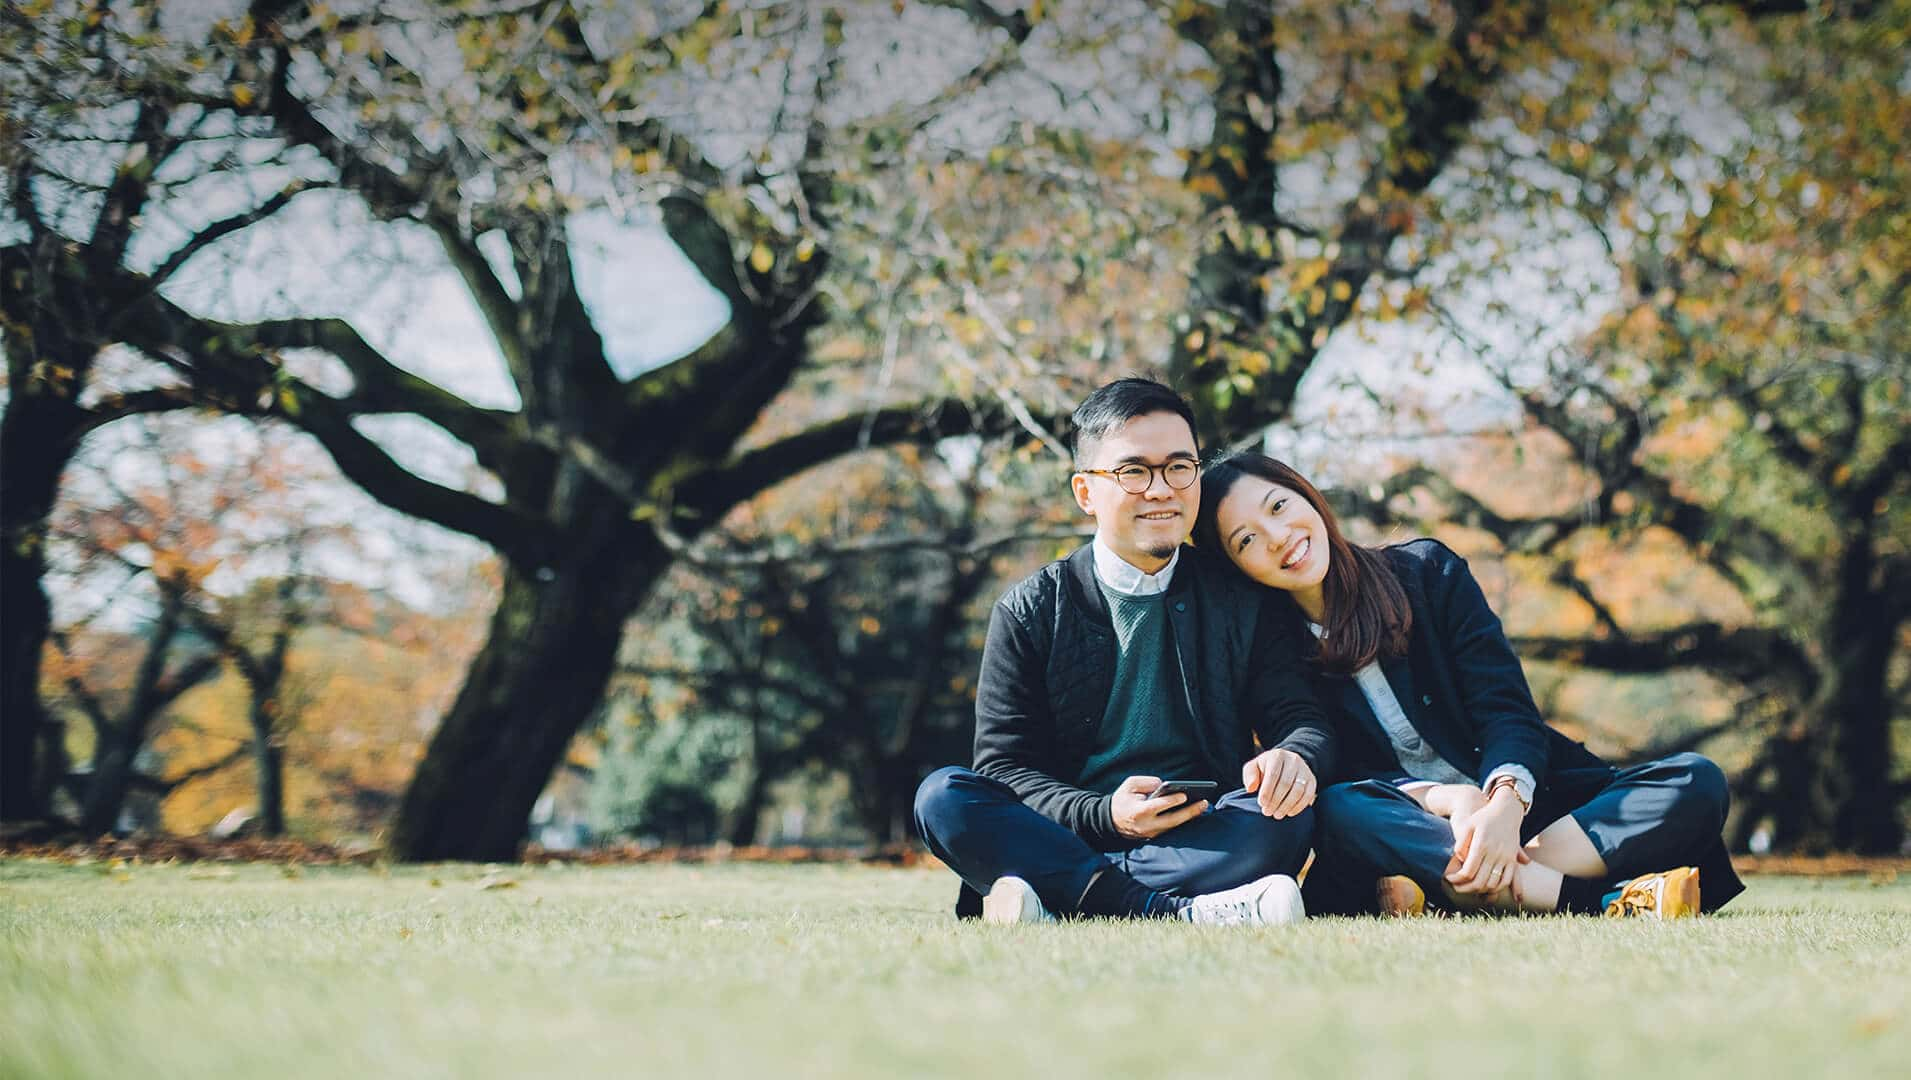 Japanese dating symbolized by a man and woman sitting cross-legged next to each other on a green field